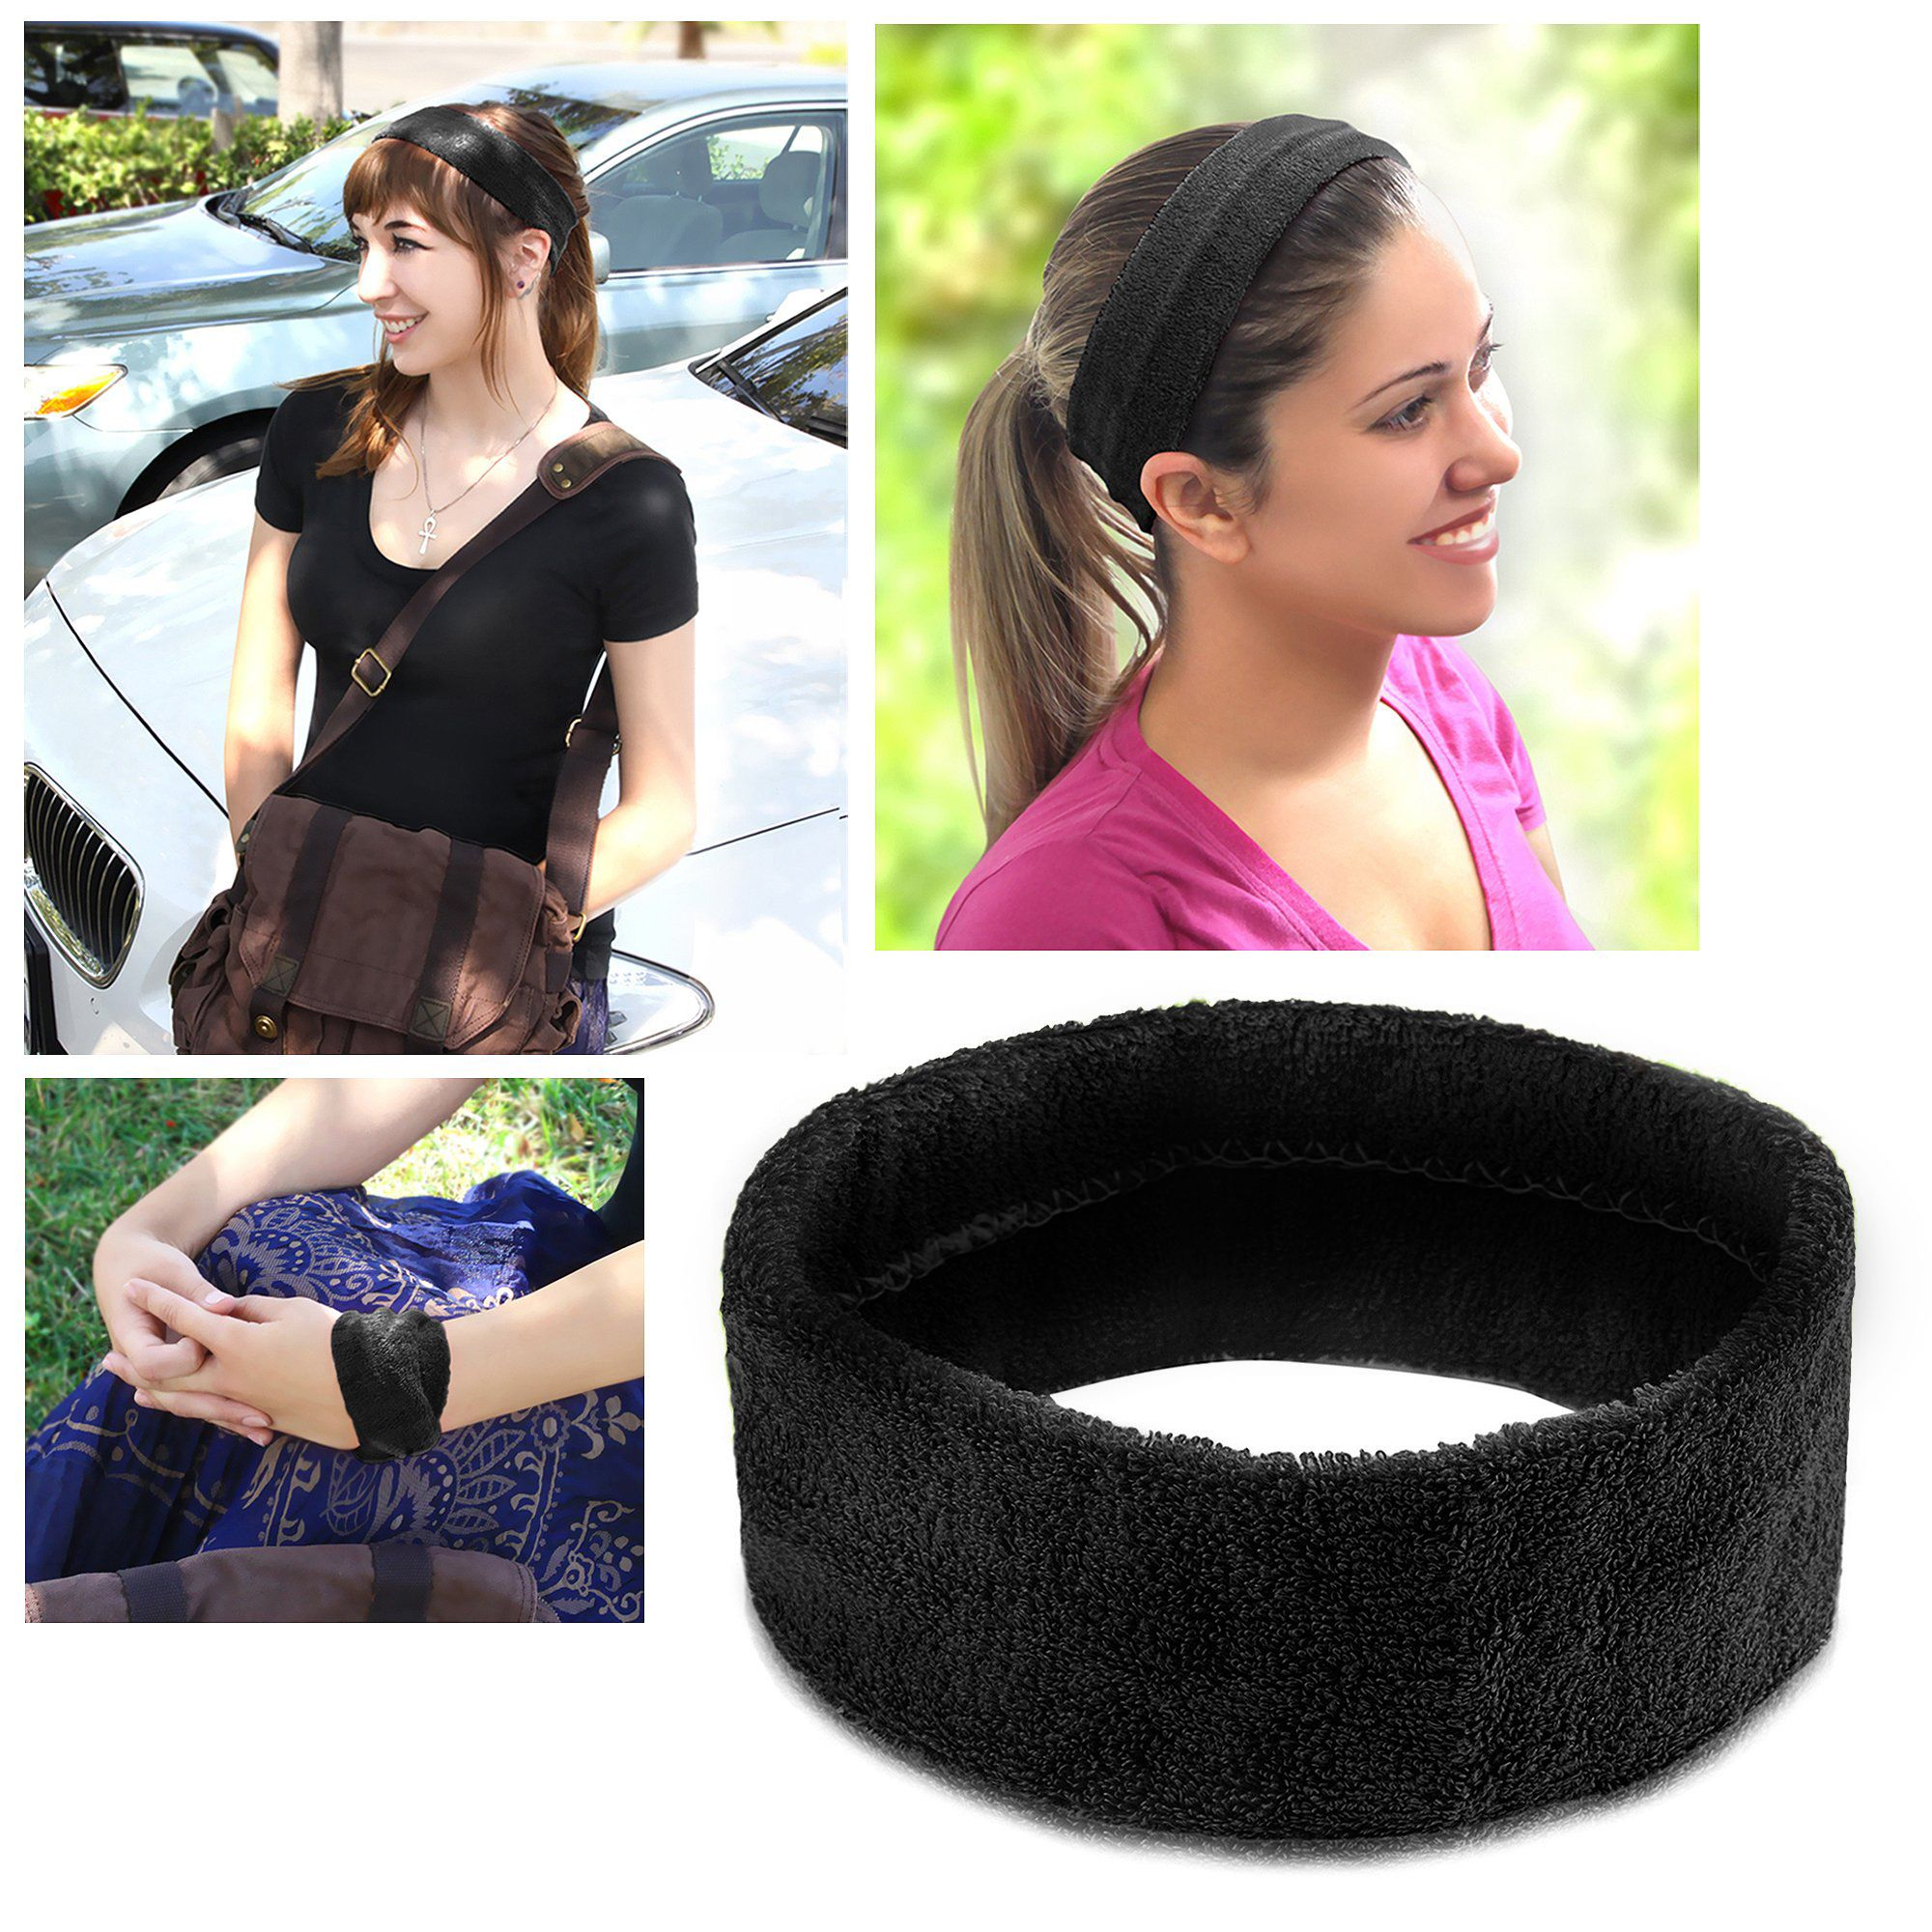 2 Pack Zodaca Black Fashion Yoga Elastic Headband Head Hair Band Women Ladies Girl Accessories Sport